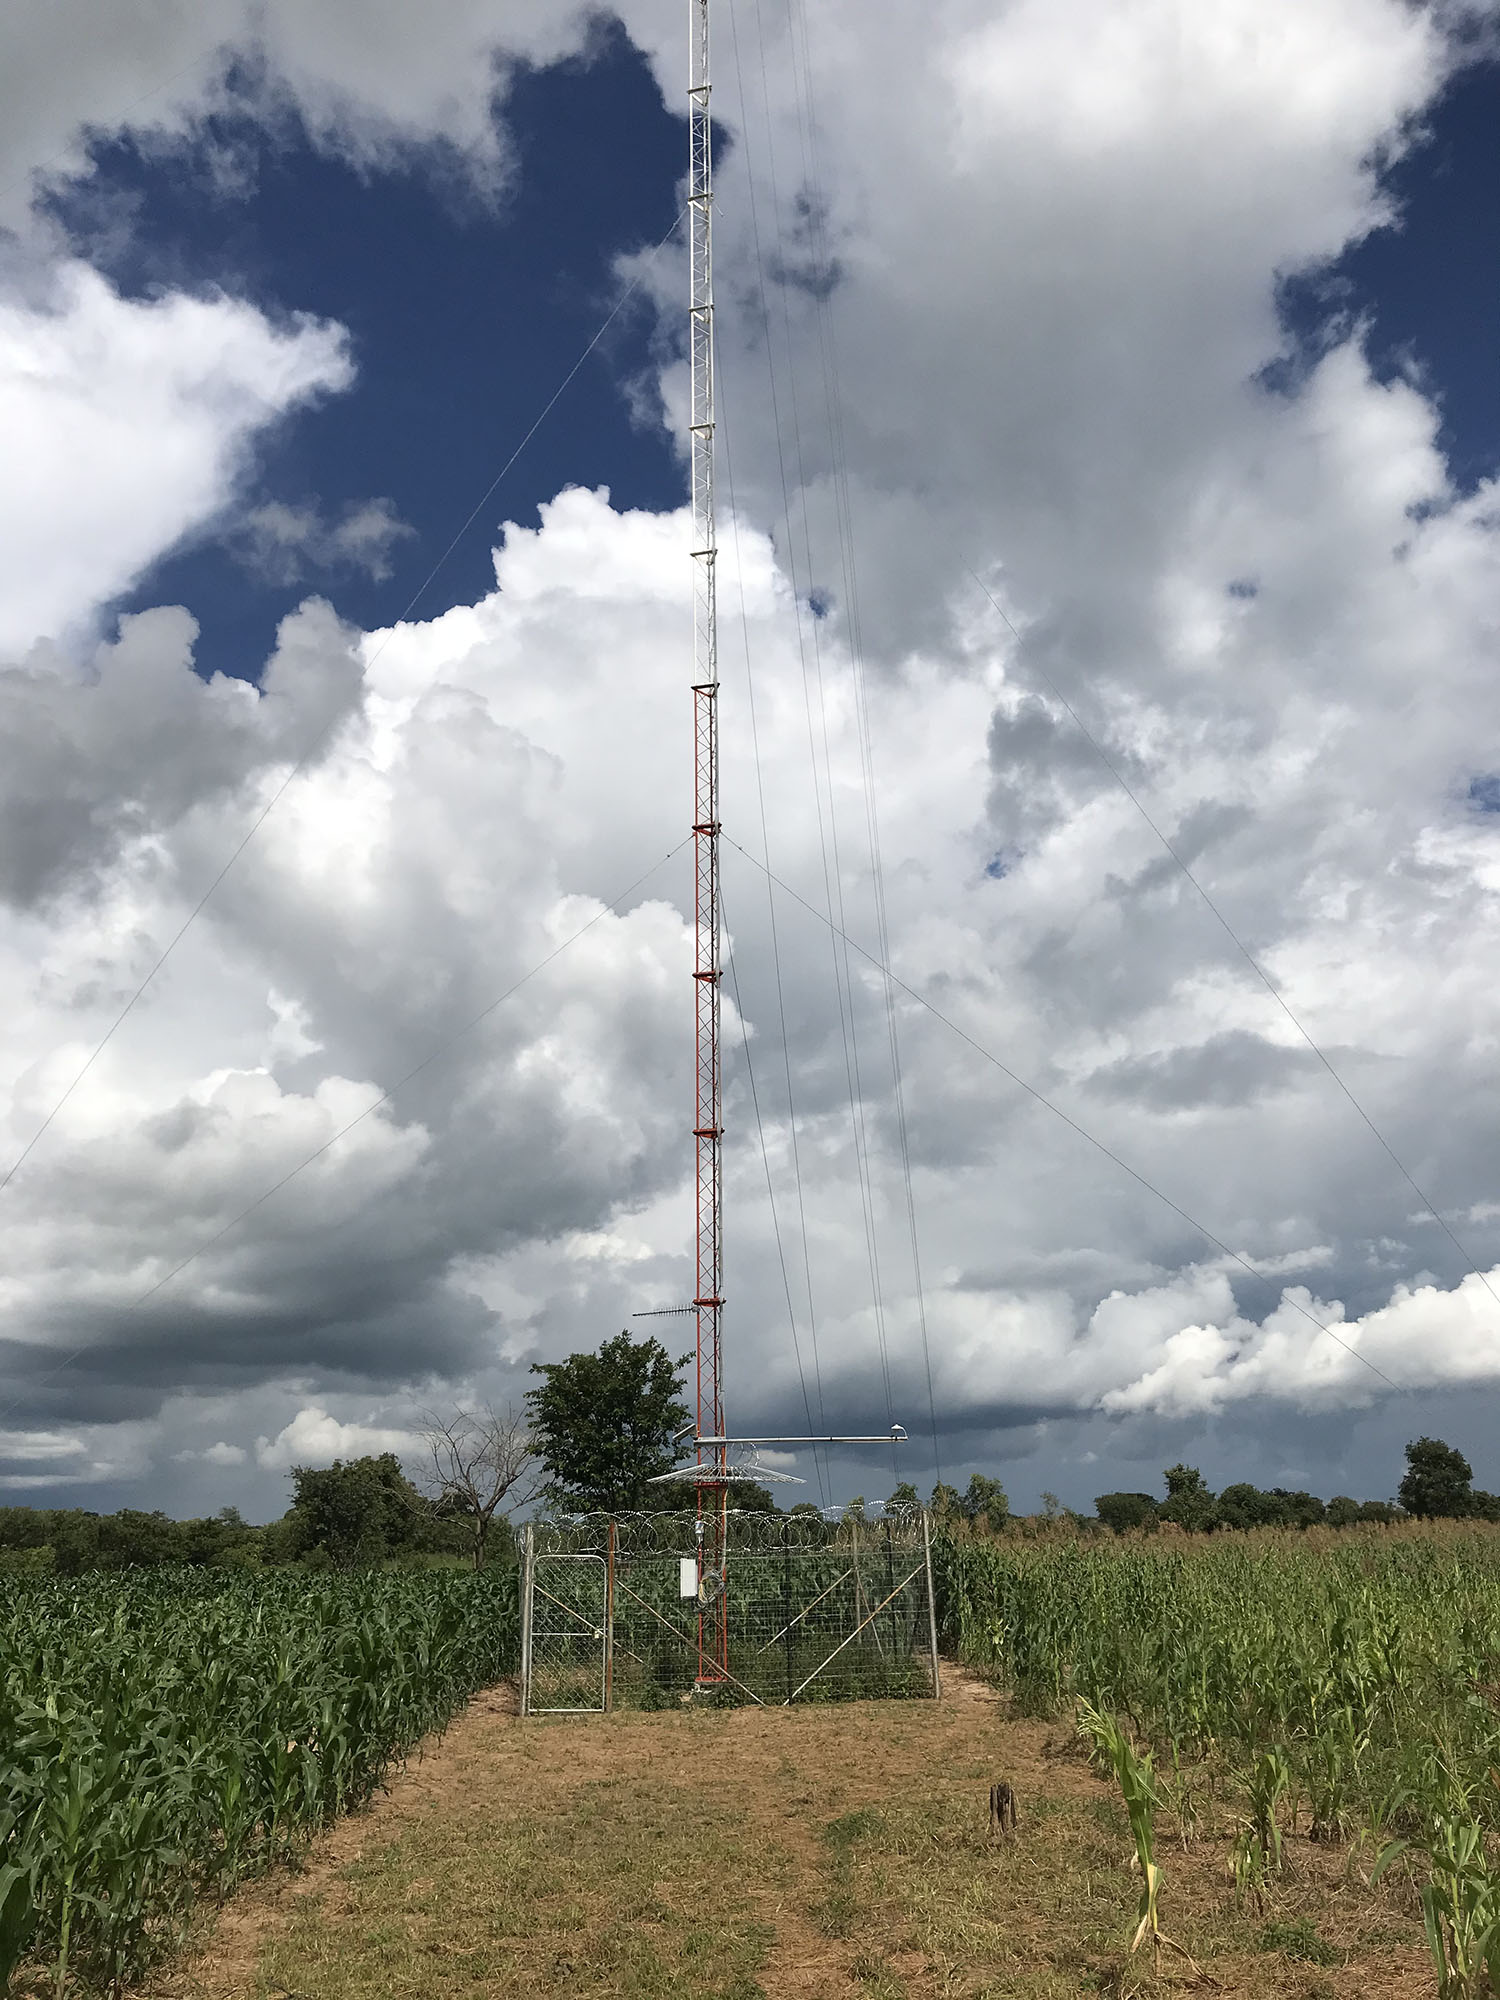 This met mast in a corn field provides revenue to the farmer and hope for electricity and economic development in the future.